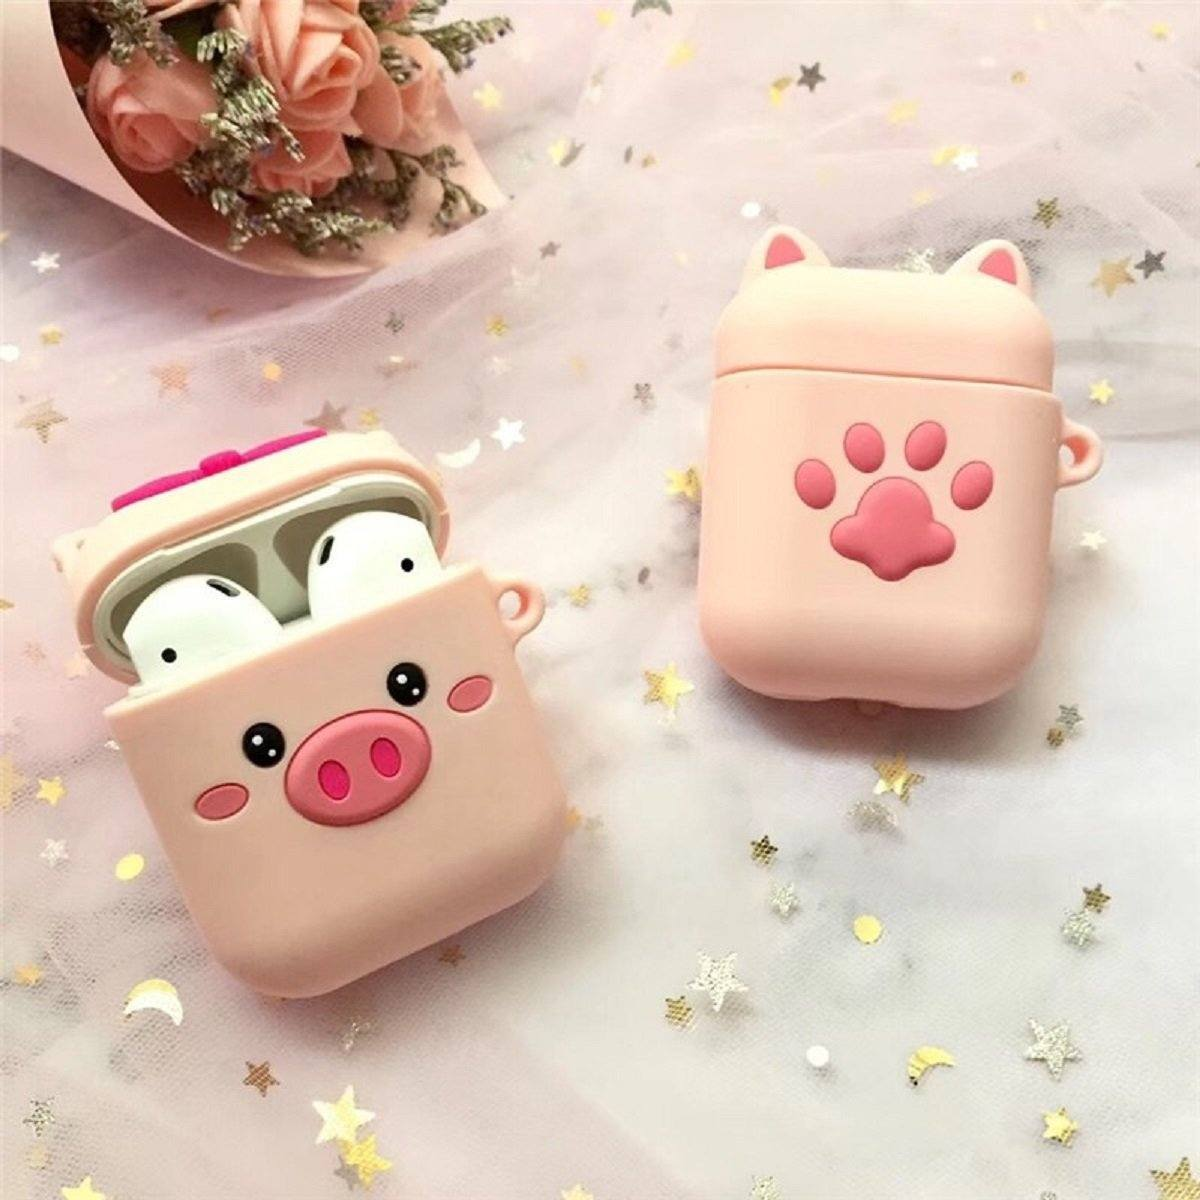 CUTE PIGLET & DOG PAW SILICONE AIRPODS CASE - Hanging Owl